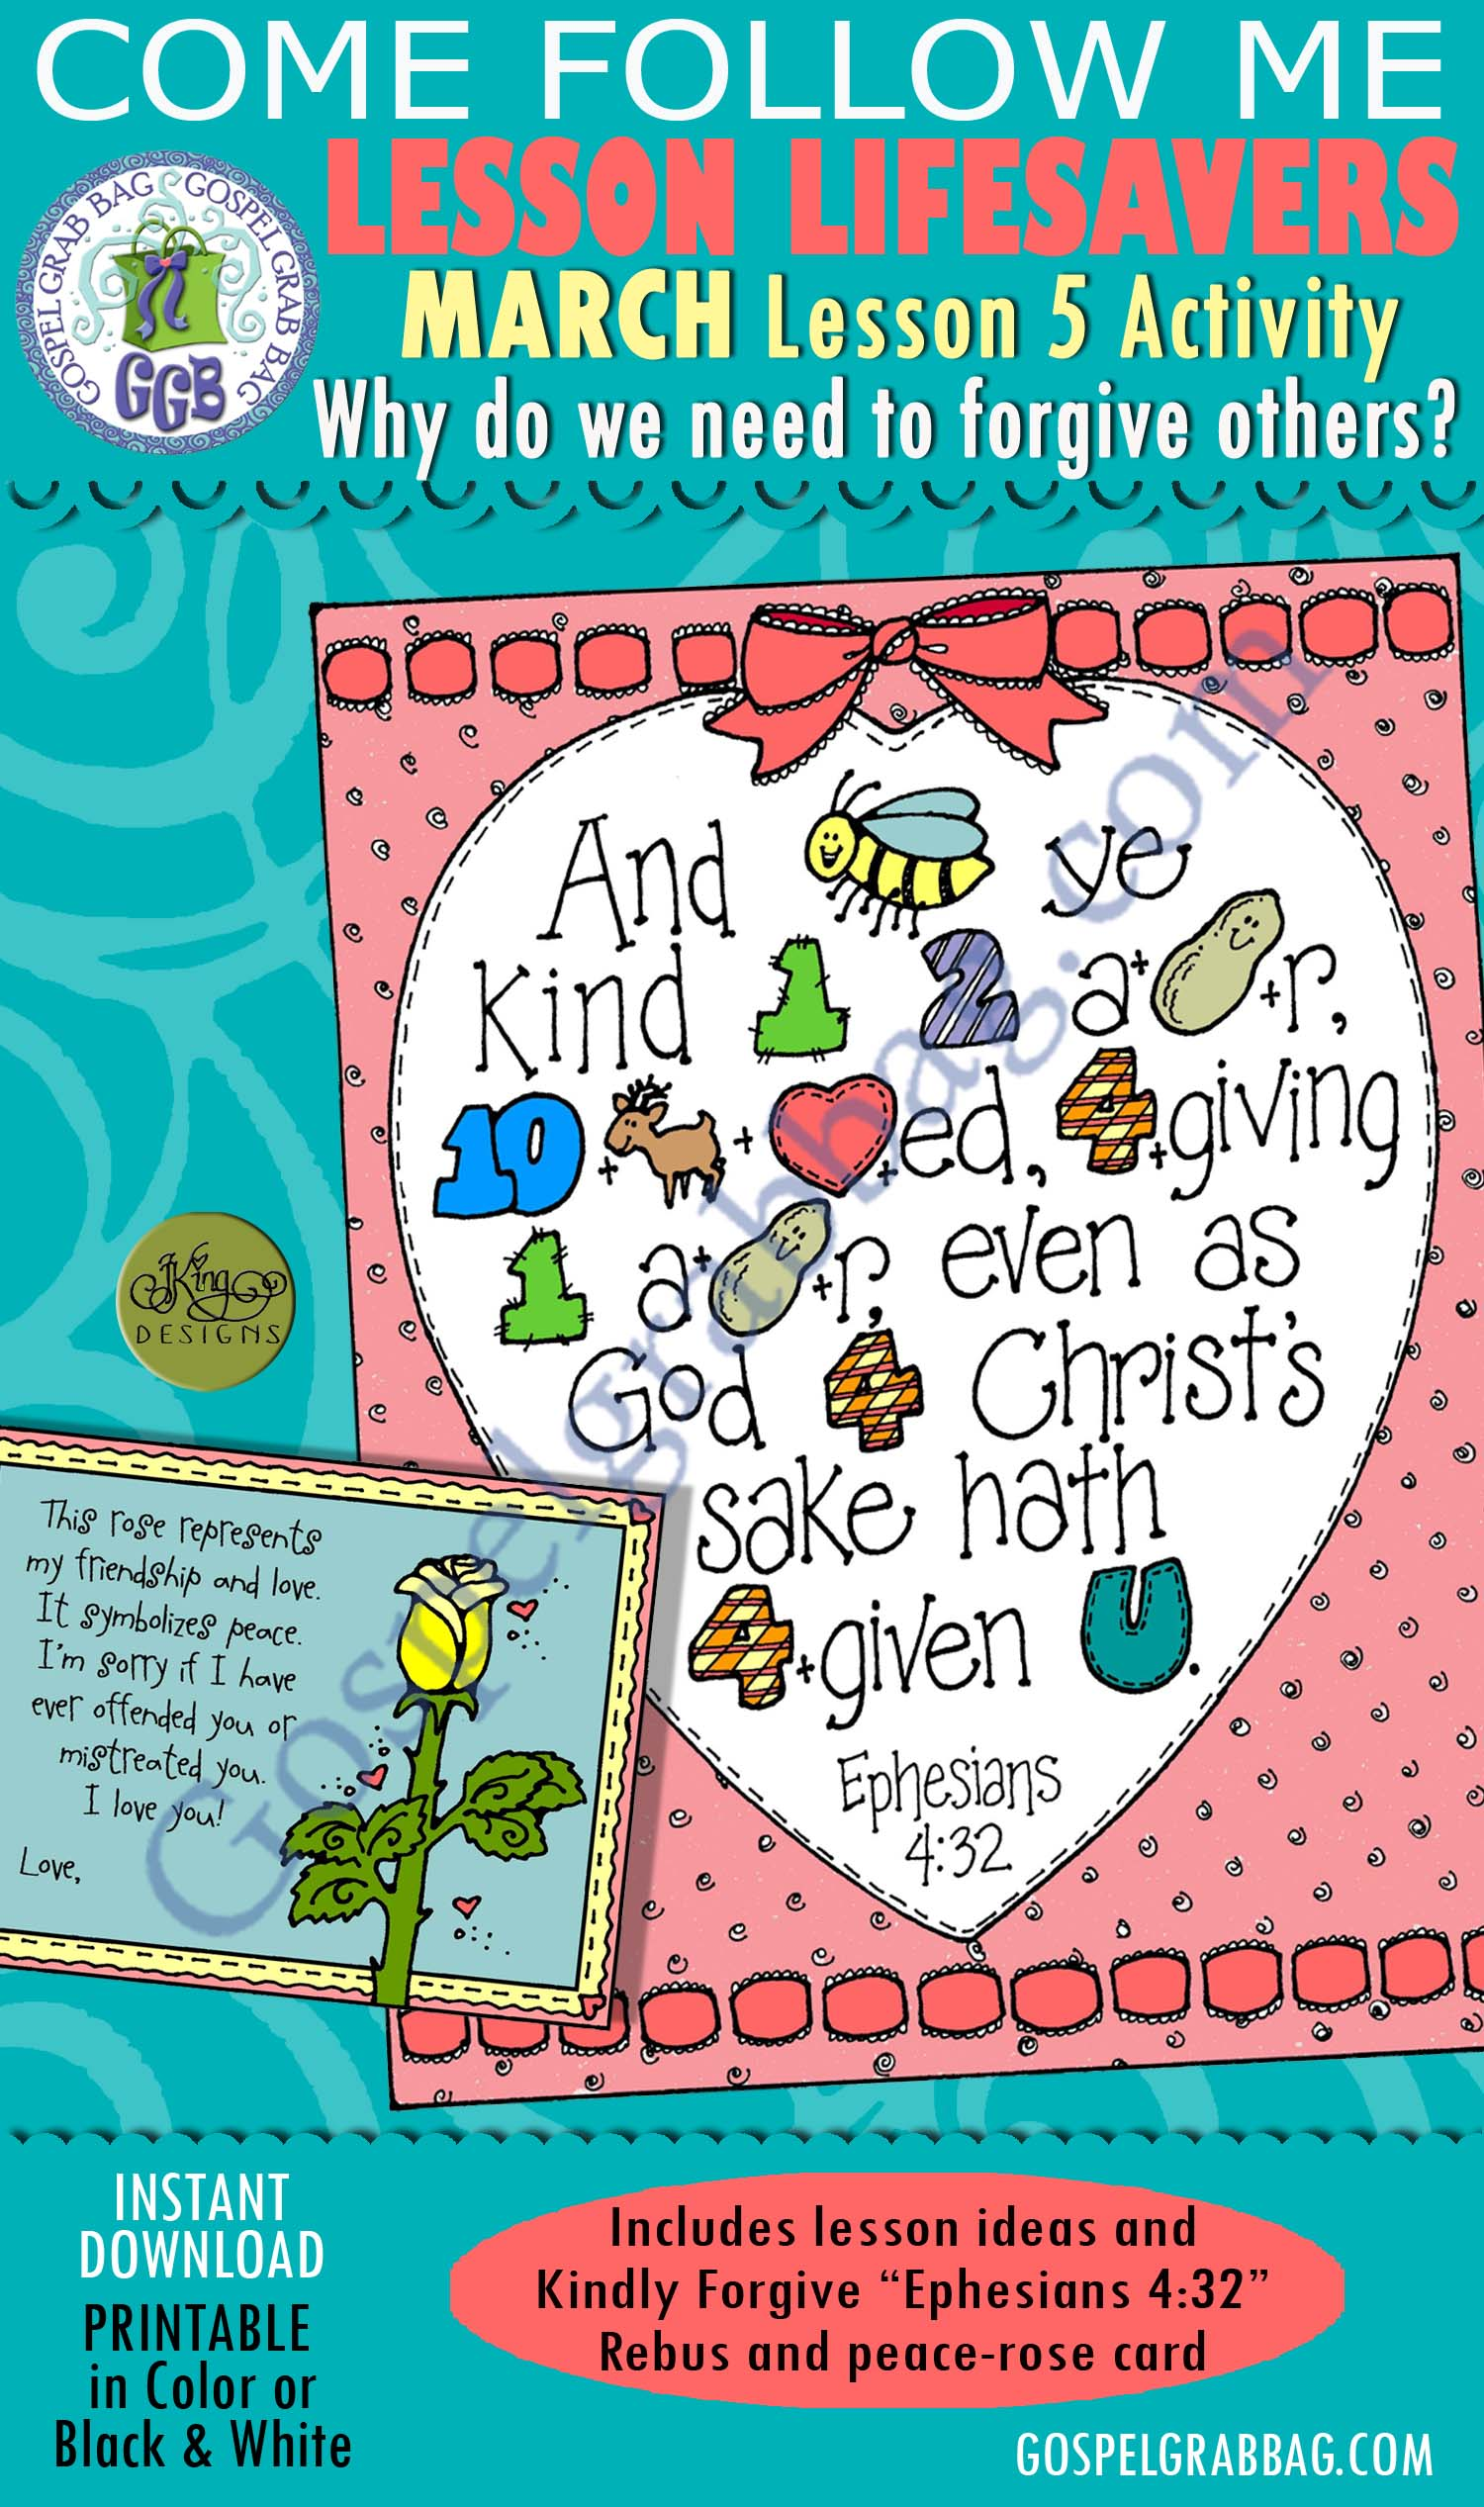 """$1.75 MARCH Lesson 5 Come Follow Me """"Why do we need to forgive others?"""" ACTIVITY: Kindly Forgive - Ephesians 4:32 scripture Rebus, and peace rose card, Young Women handouts, LDS Printables, Gospelgrabbag.com"""